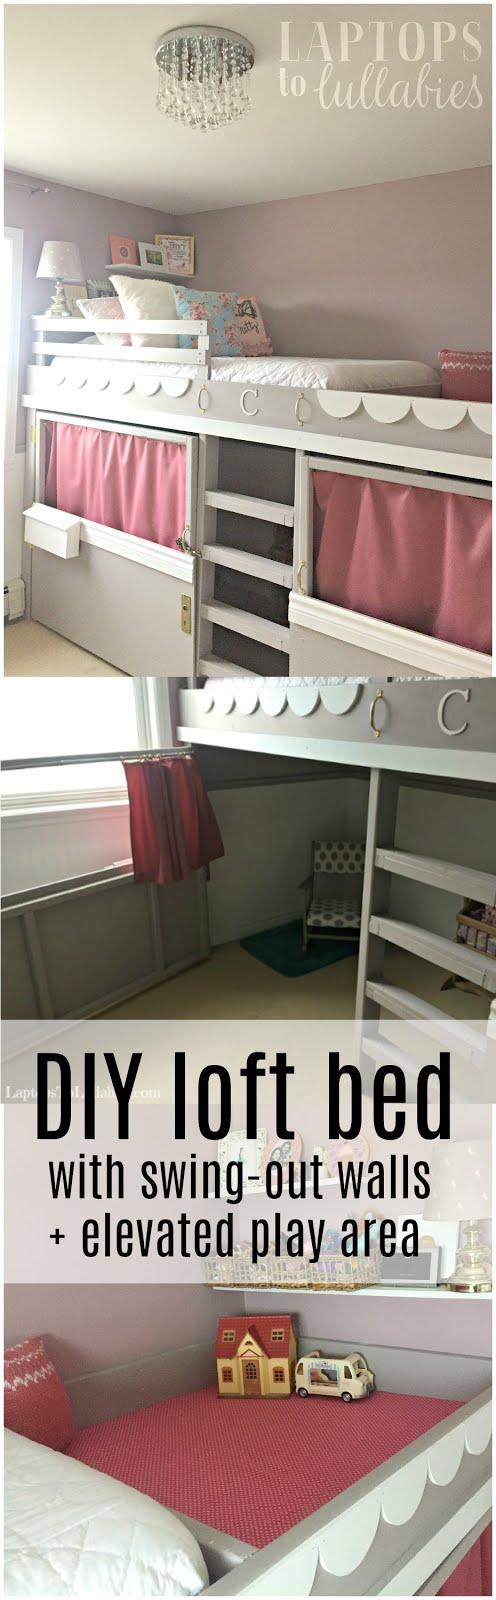 Featured kids' room DIY